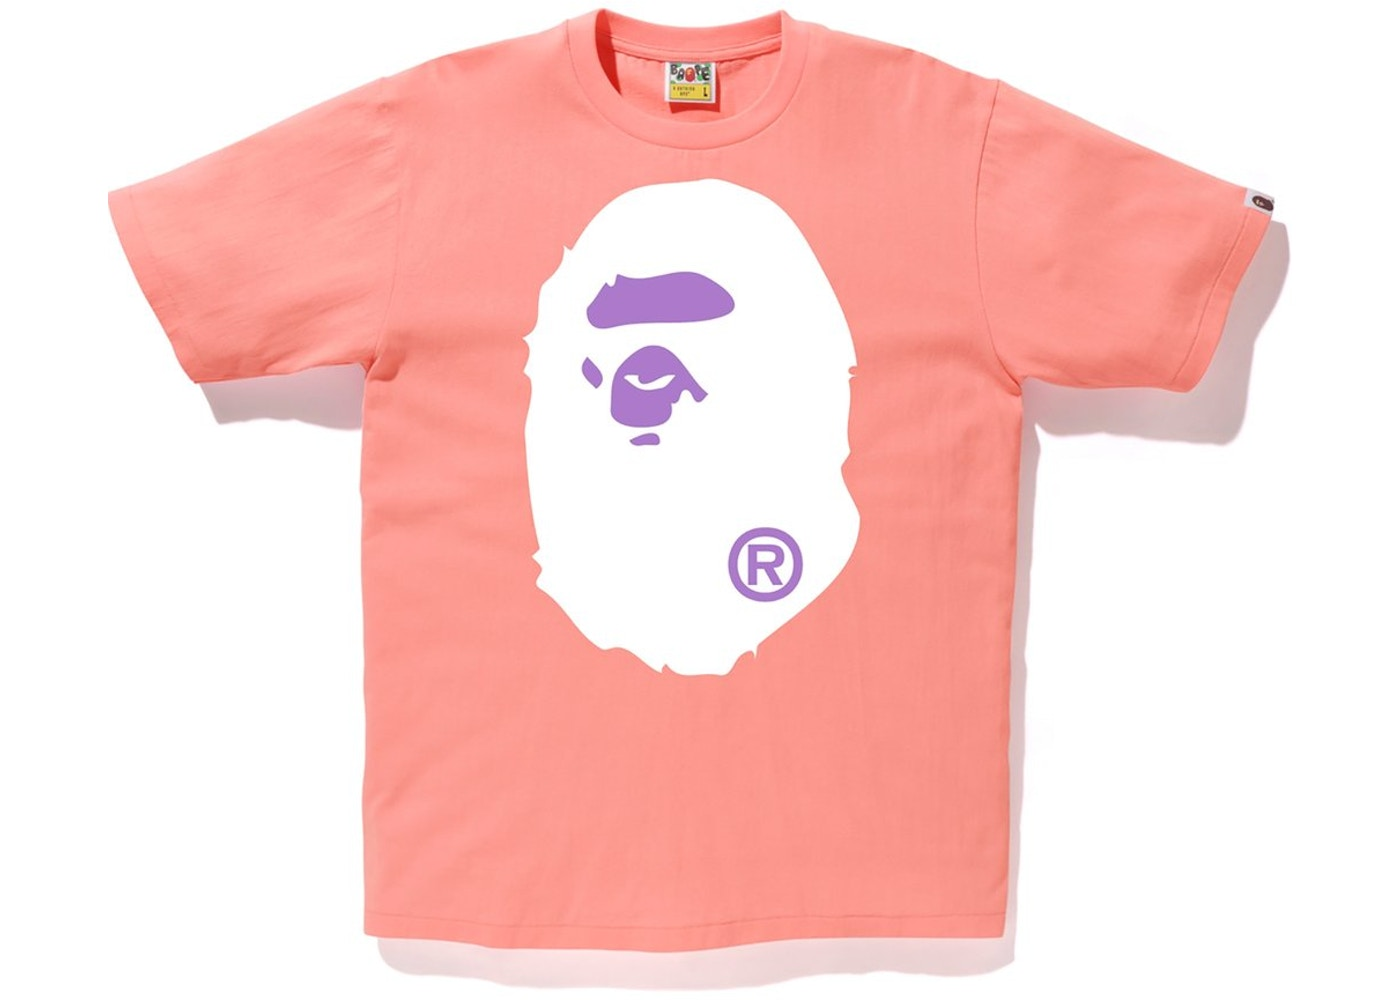 23c55dae7 Bape T-Shirts - Buy & Sell Streetwear